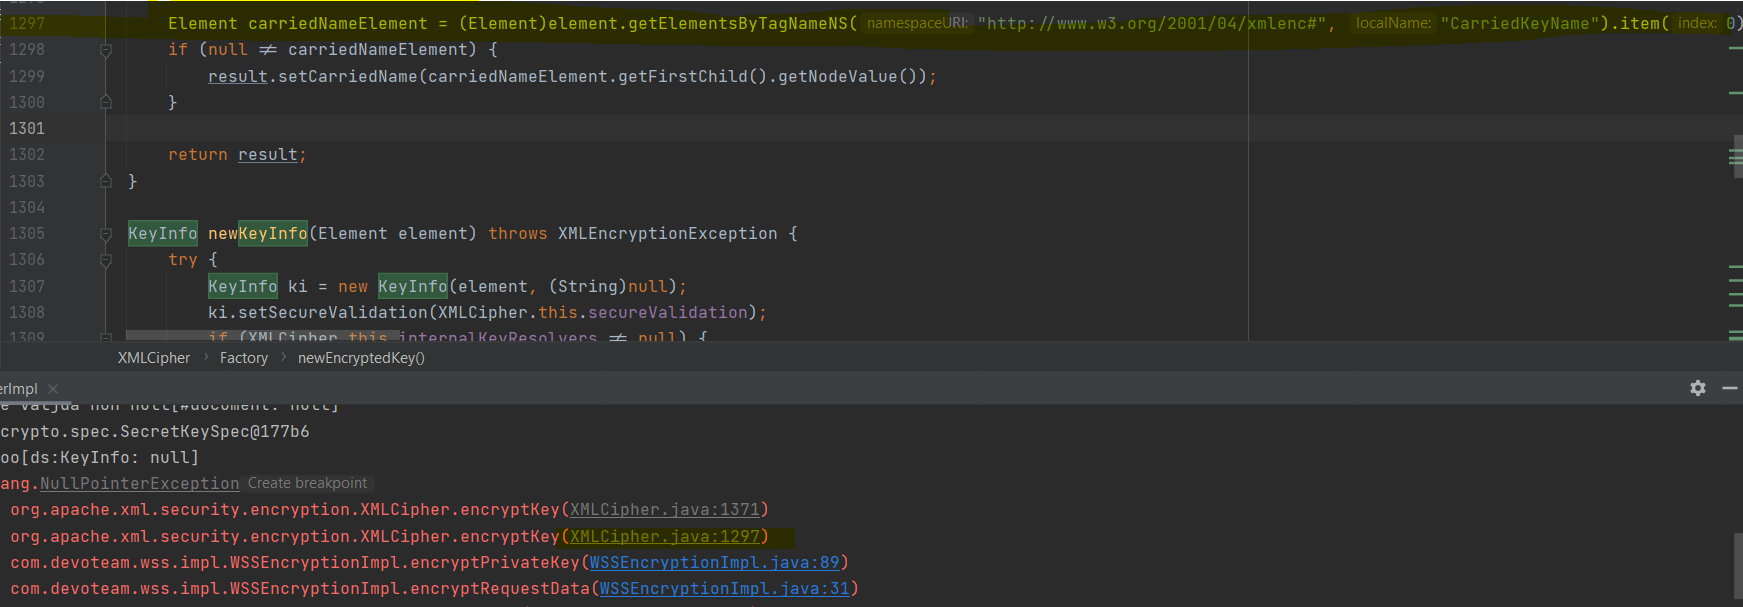 xml - XMCipher - Encrypting secret key with public key in Java - getting null pointer exception - Stack Overflow